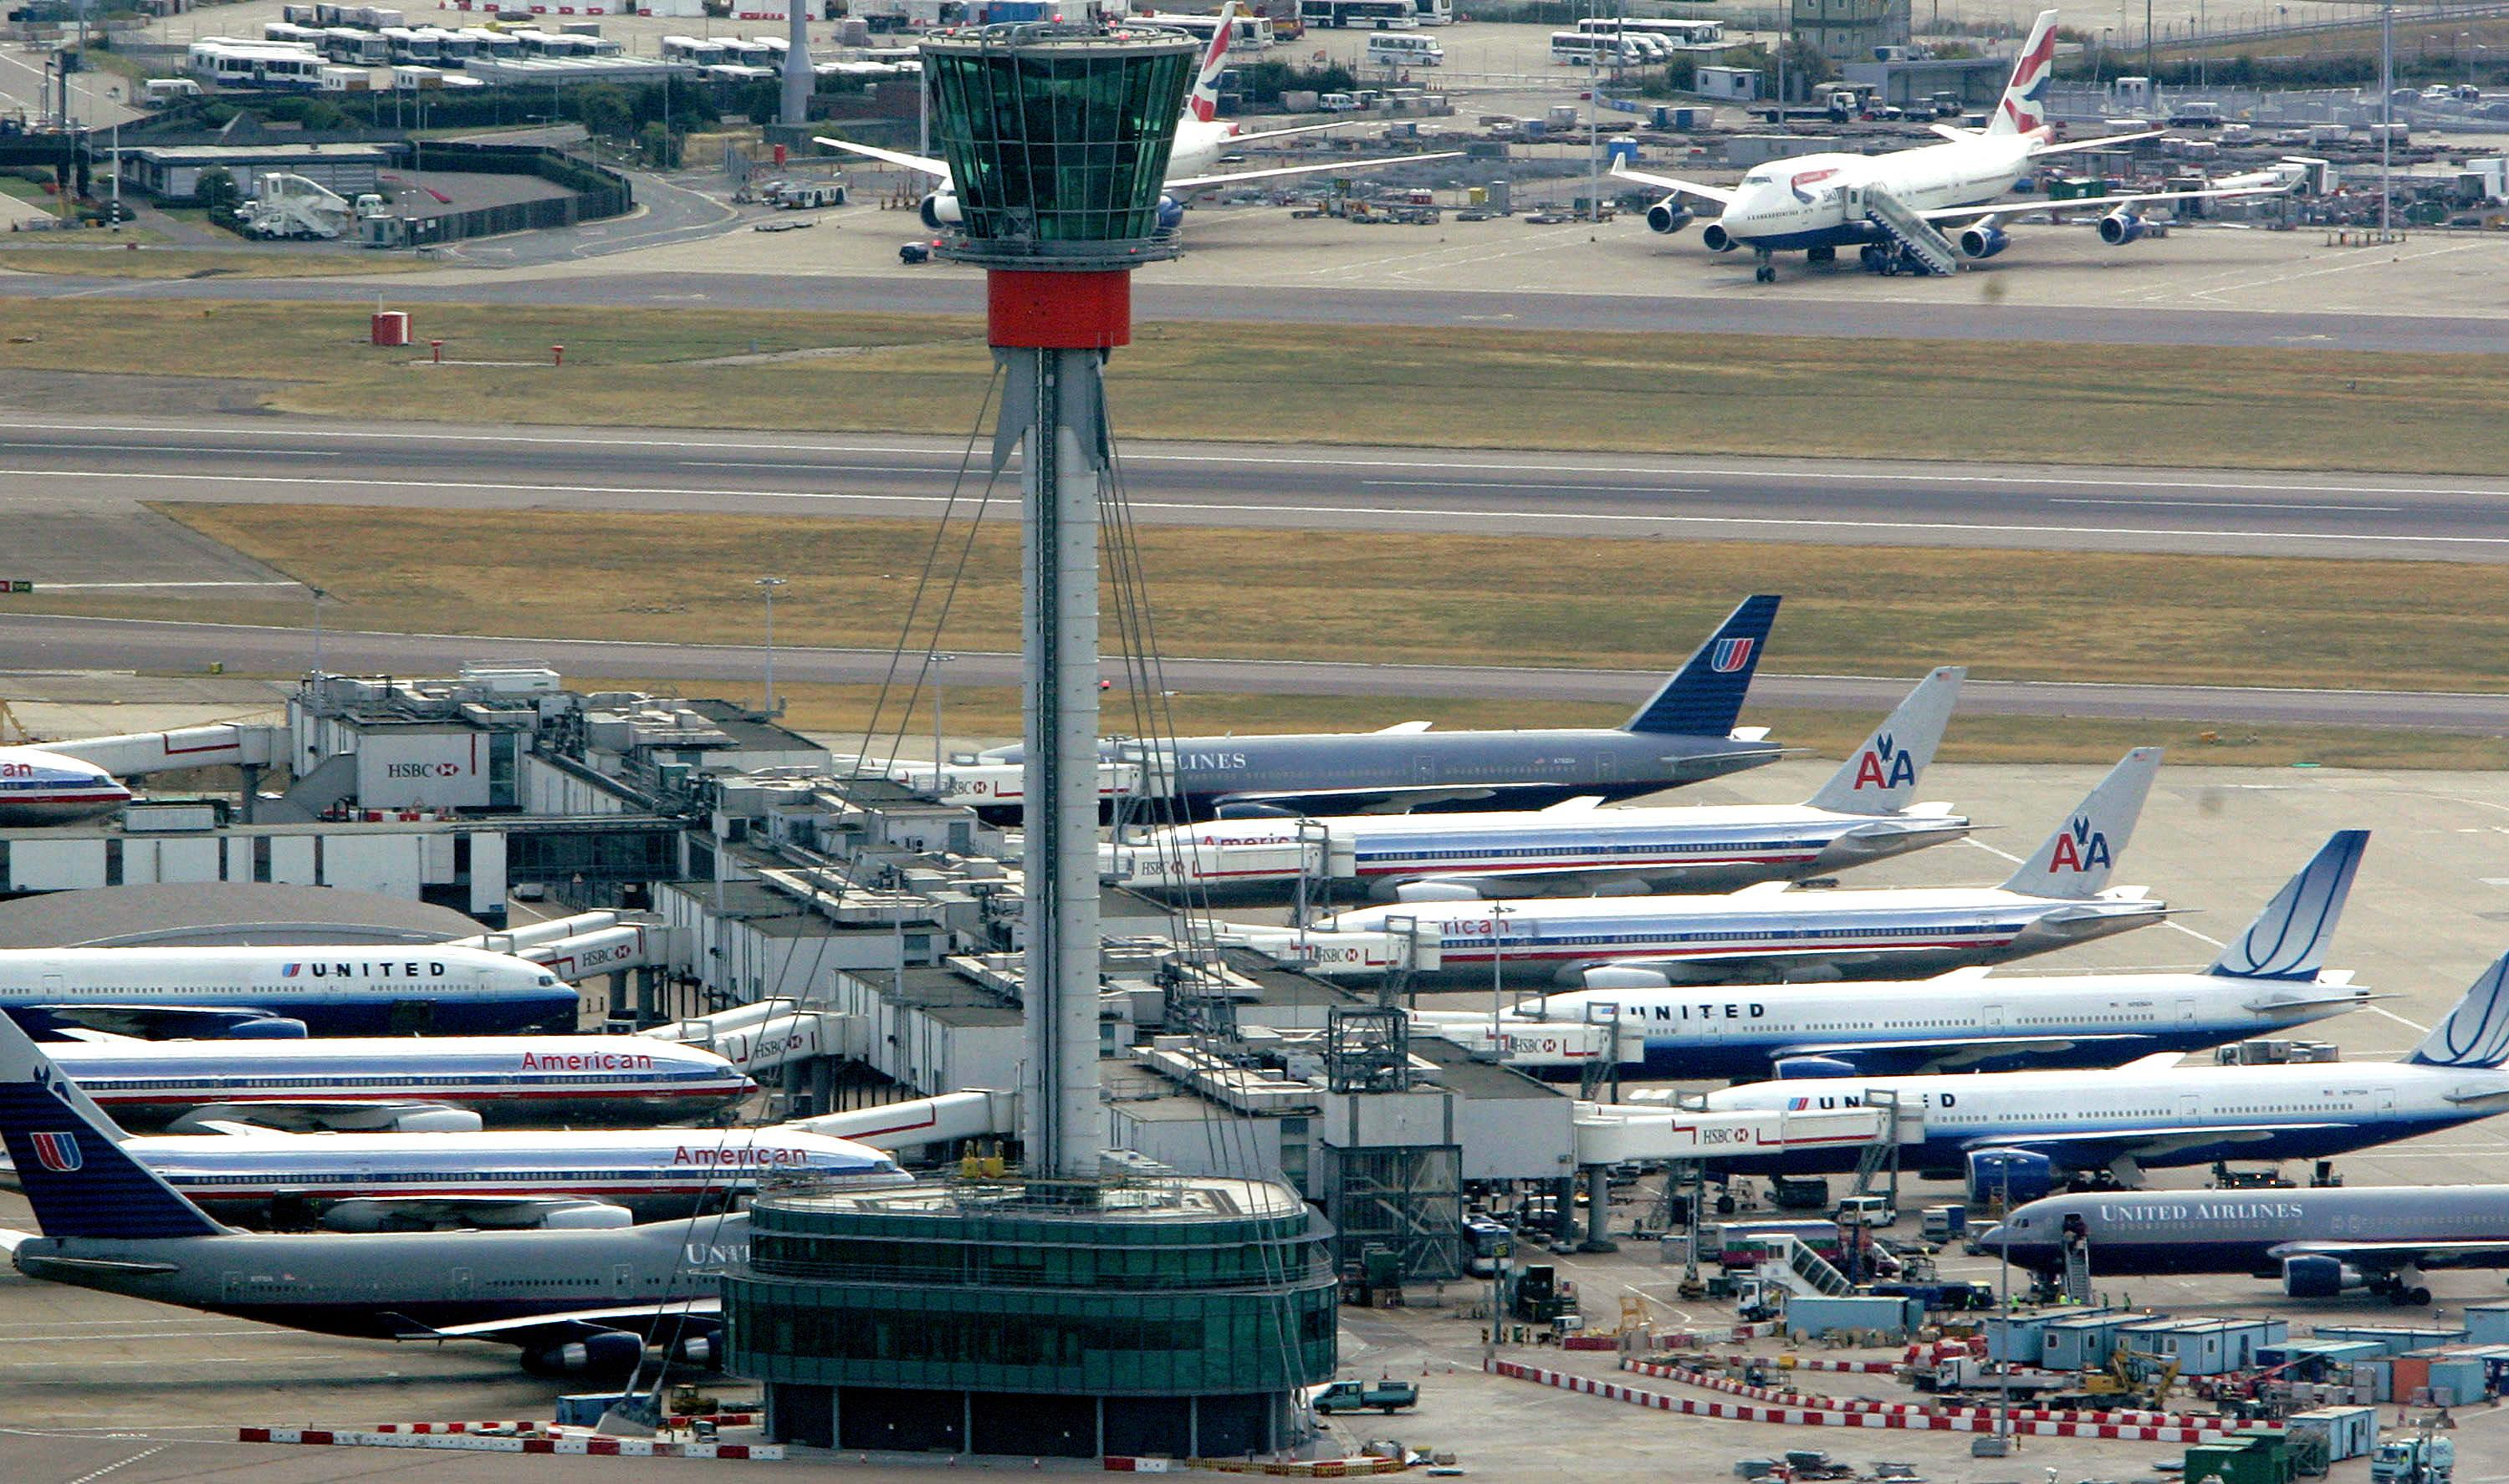 Aeroplanes sit on the tarmac at Heathrow Airport in London, August 10 2006 (AFP Photo/AFP)